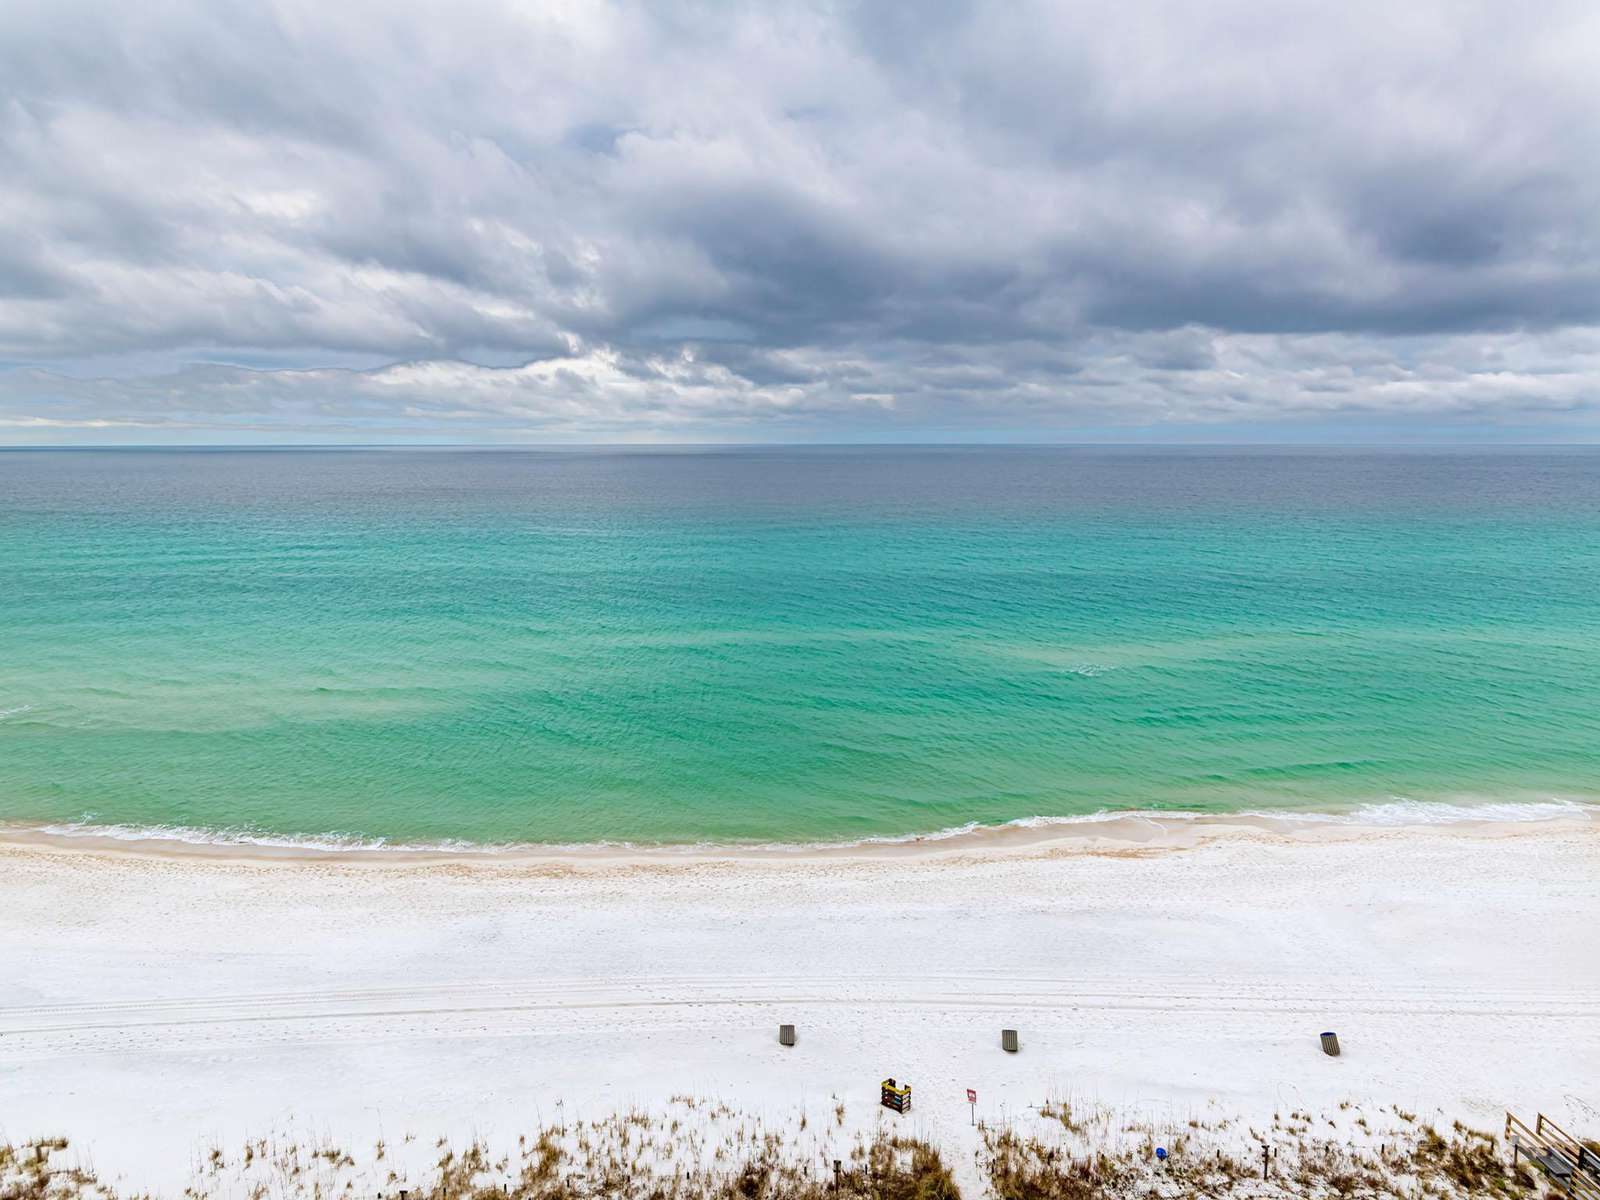 Sugar white sands and emerald waters! PCB!